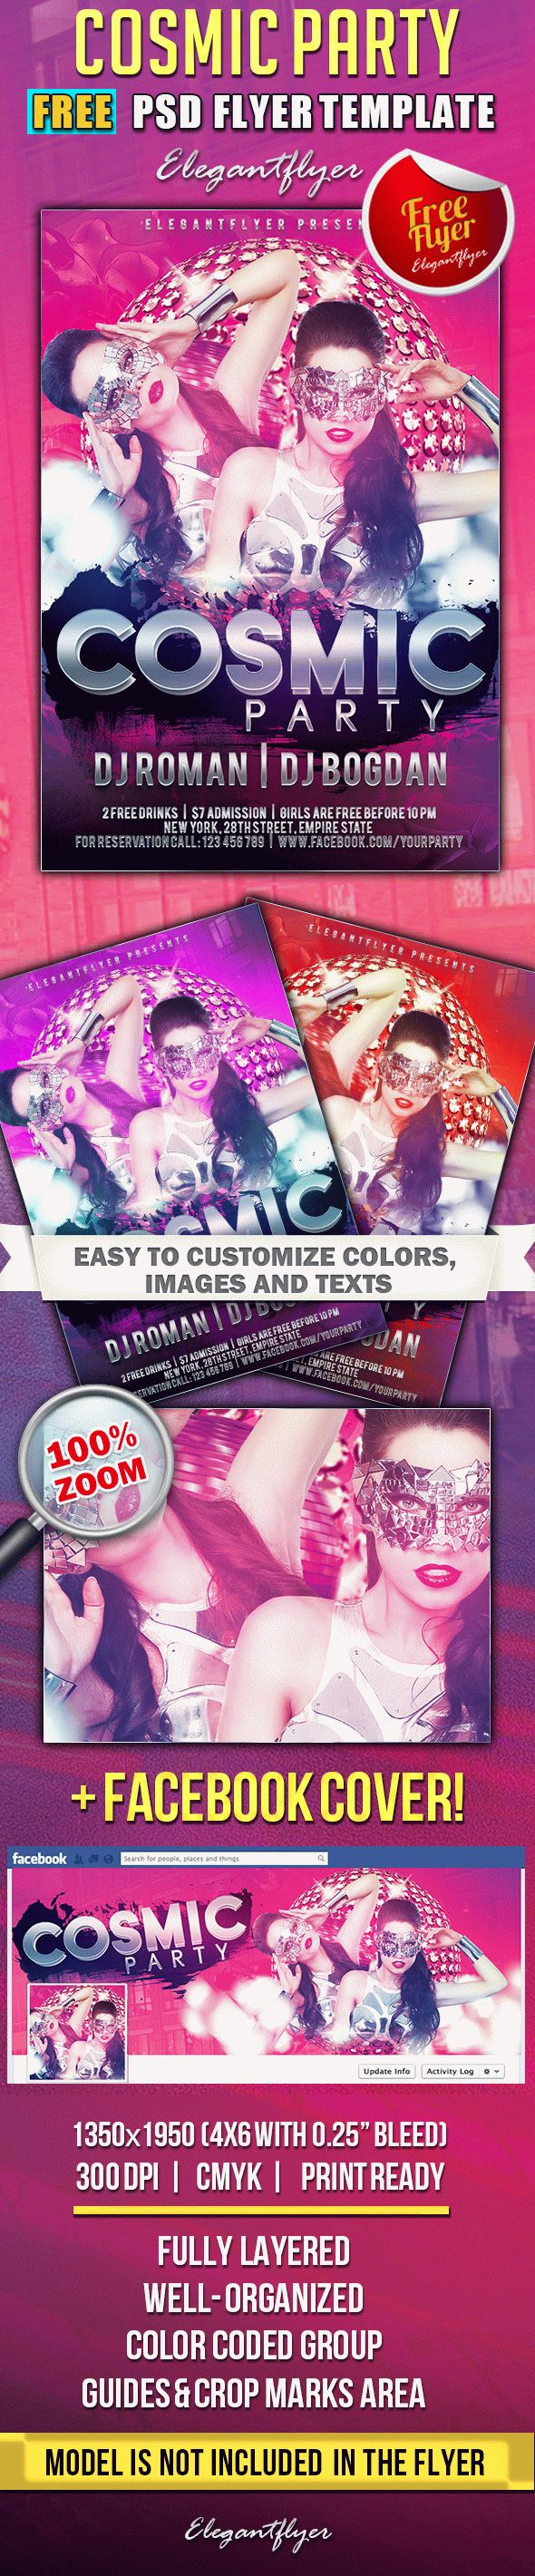 Free Flyer Template For Cosmic Party